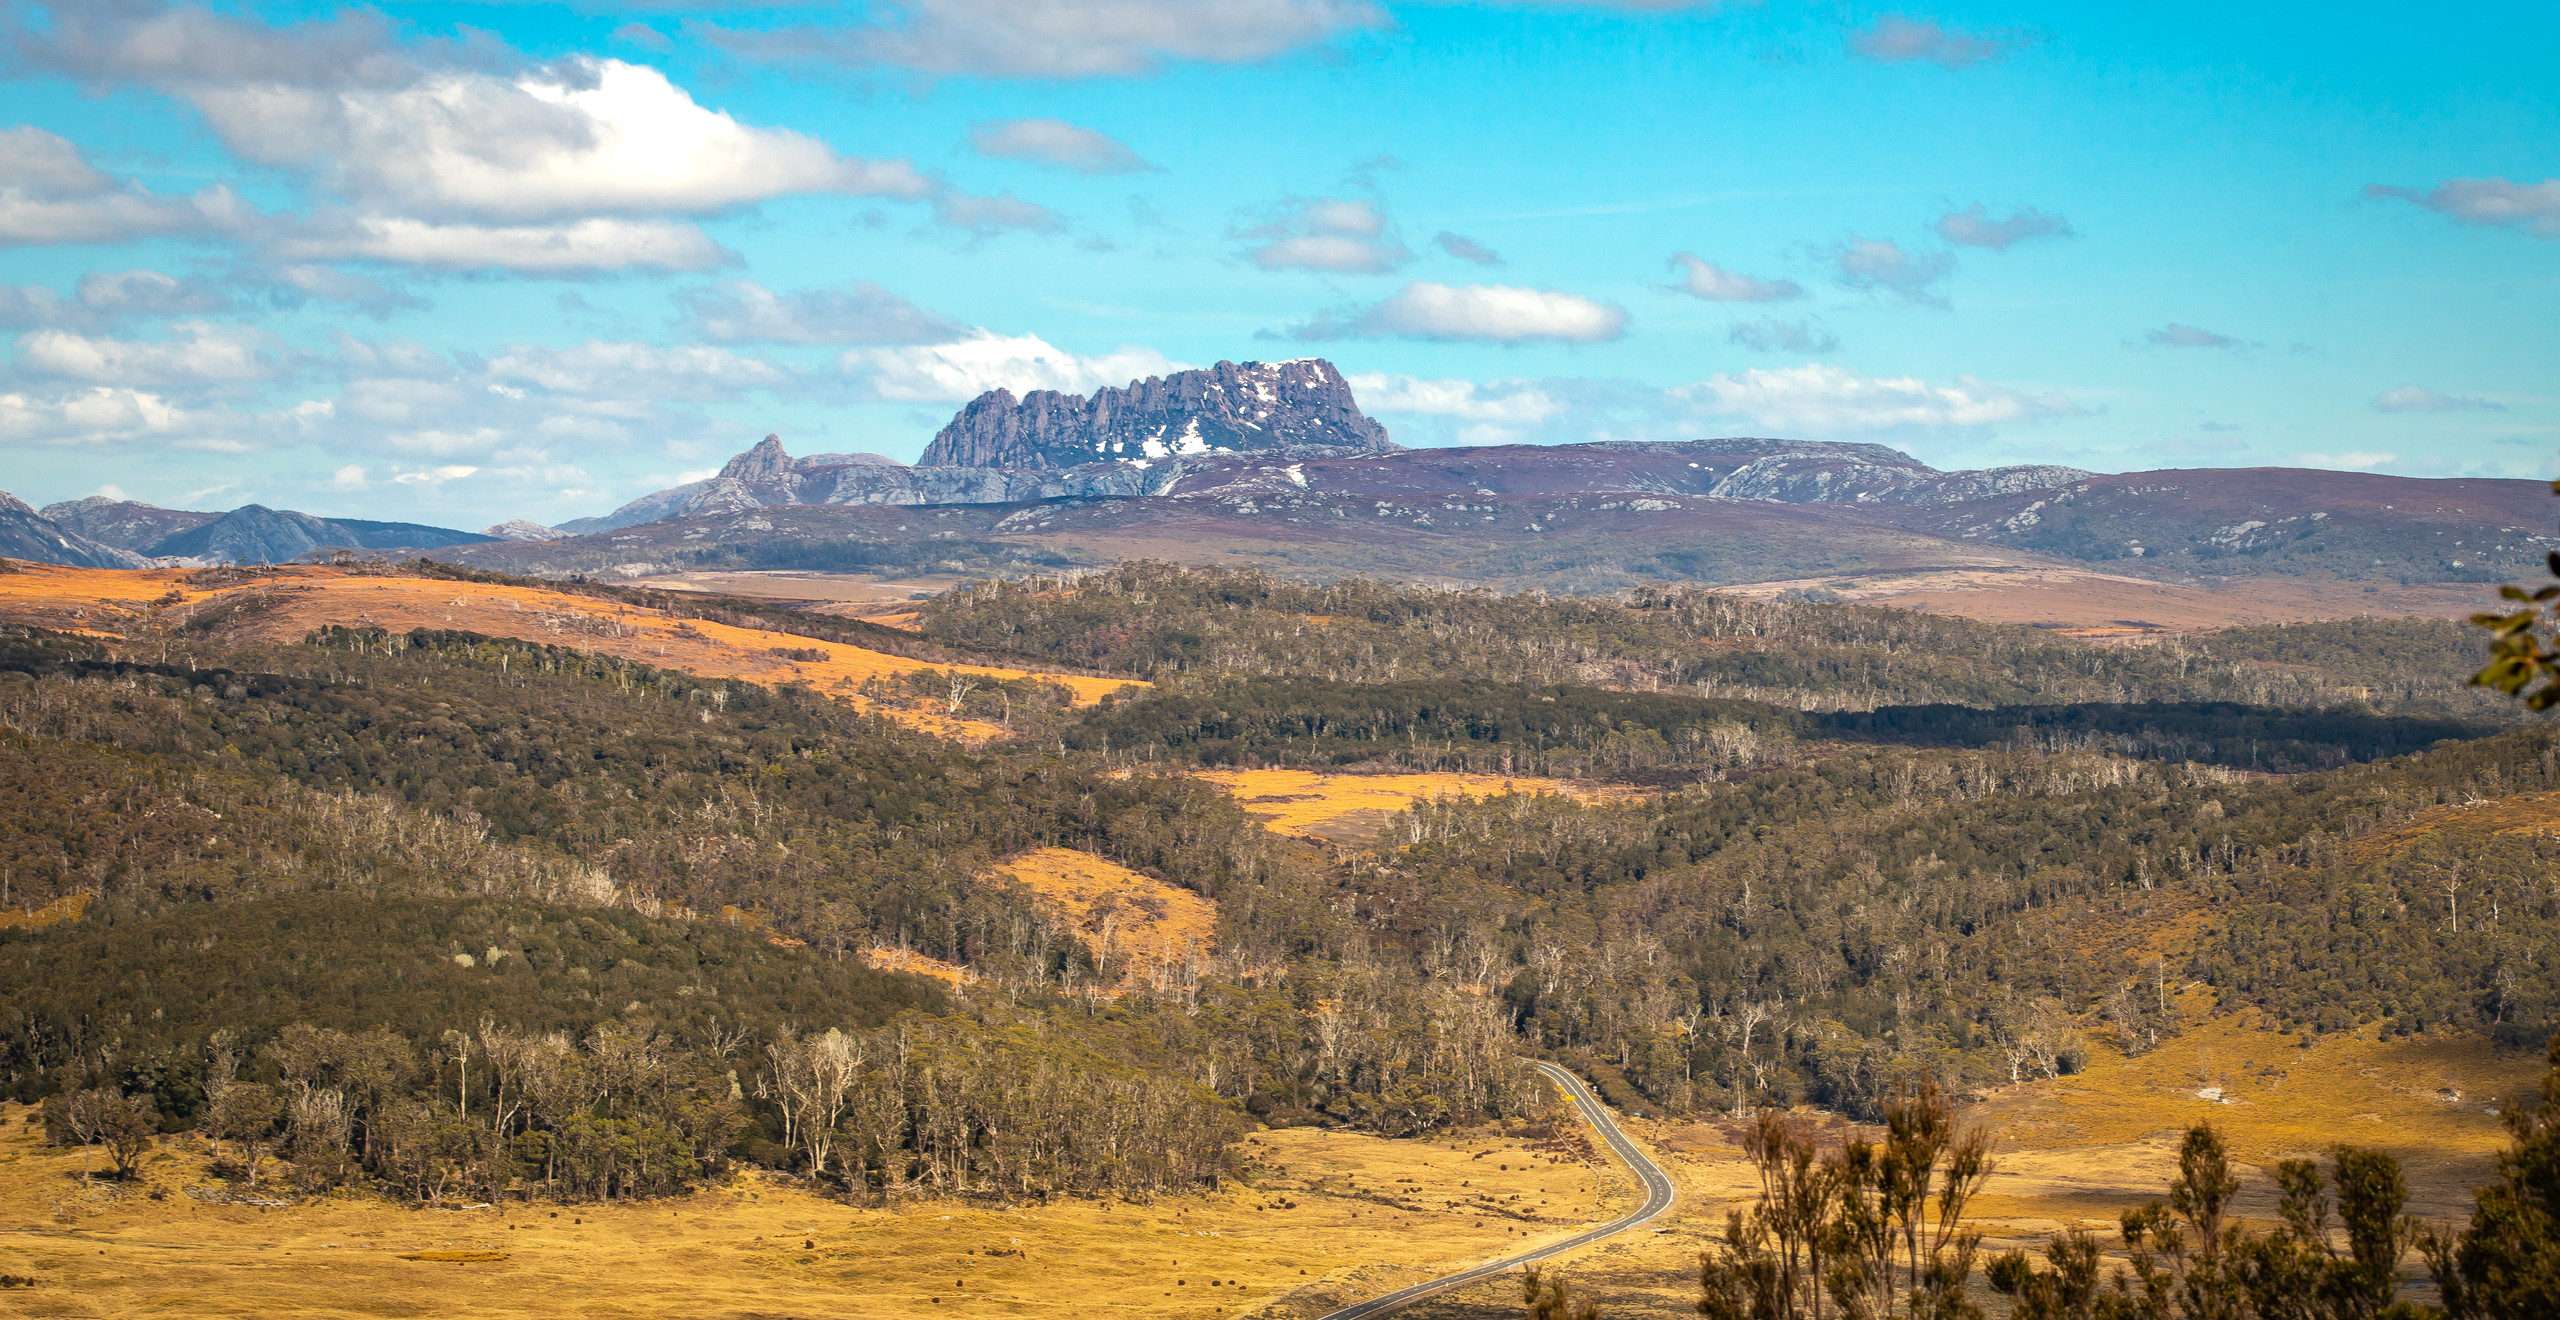 View of Cradle Mountain from Black Bluff, Tasmania